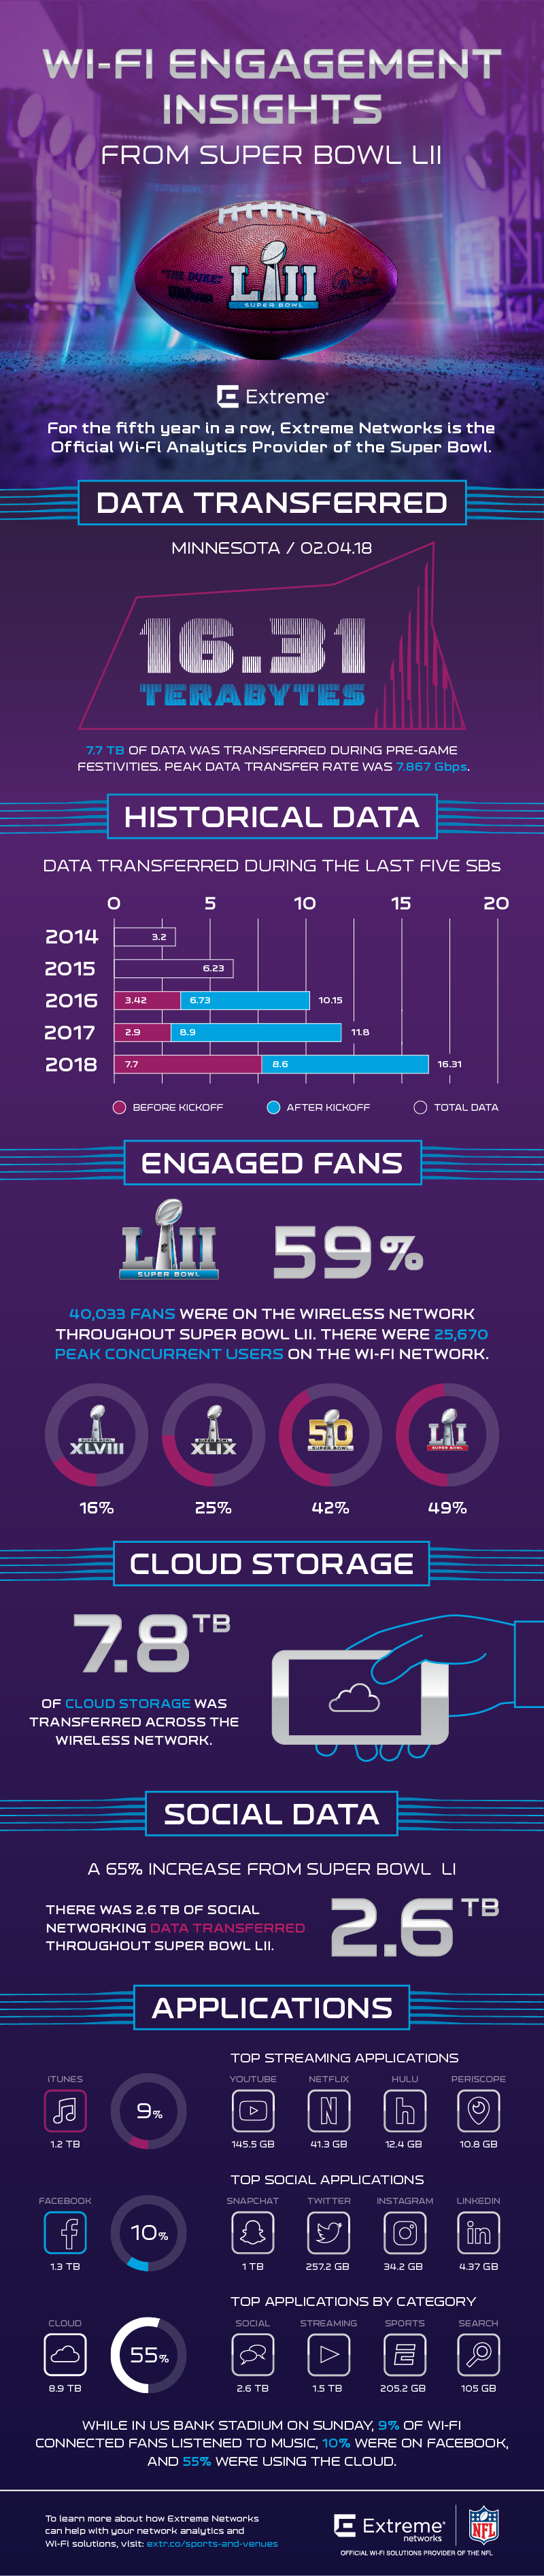 12800-Super-Bowl-52-Infographic_v6b.png